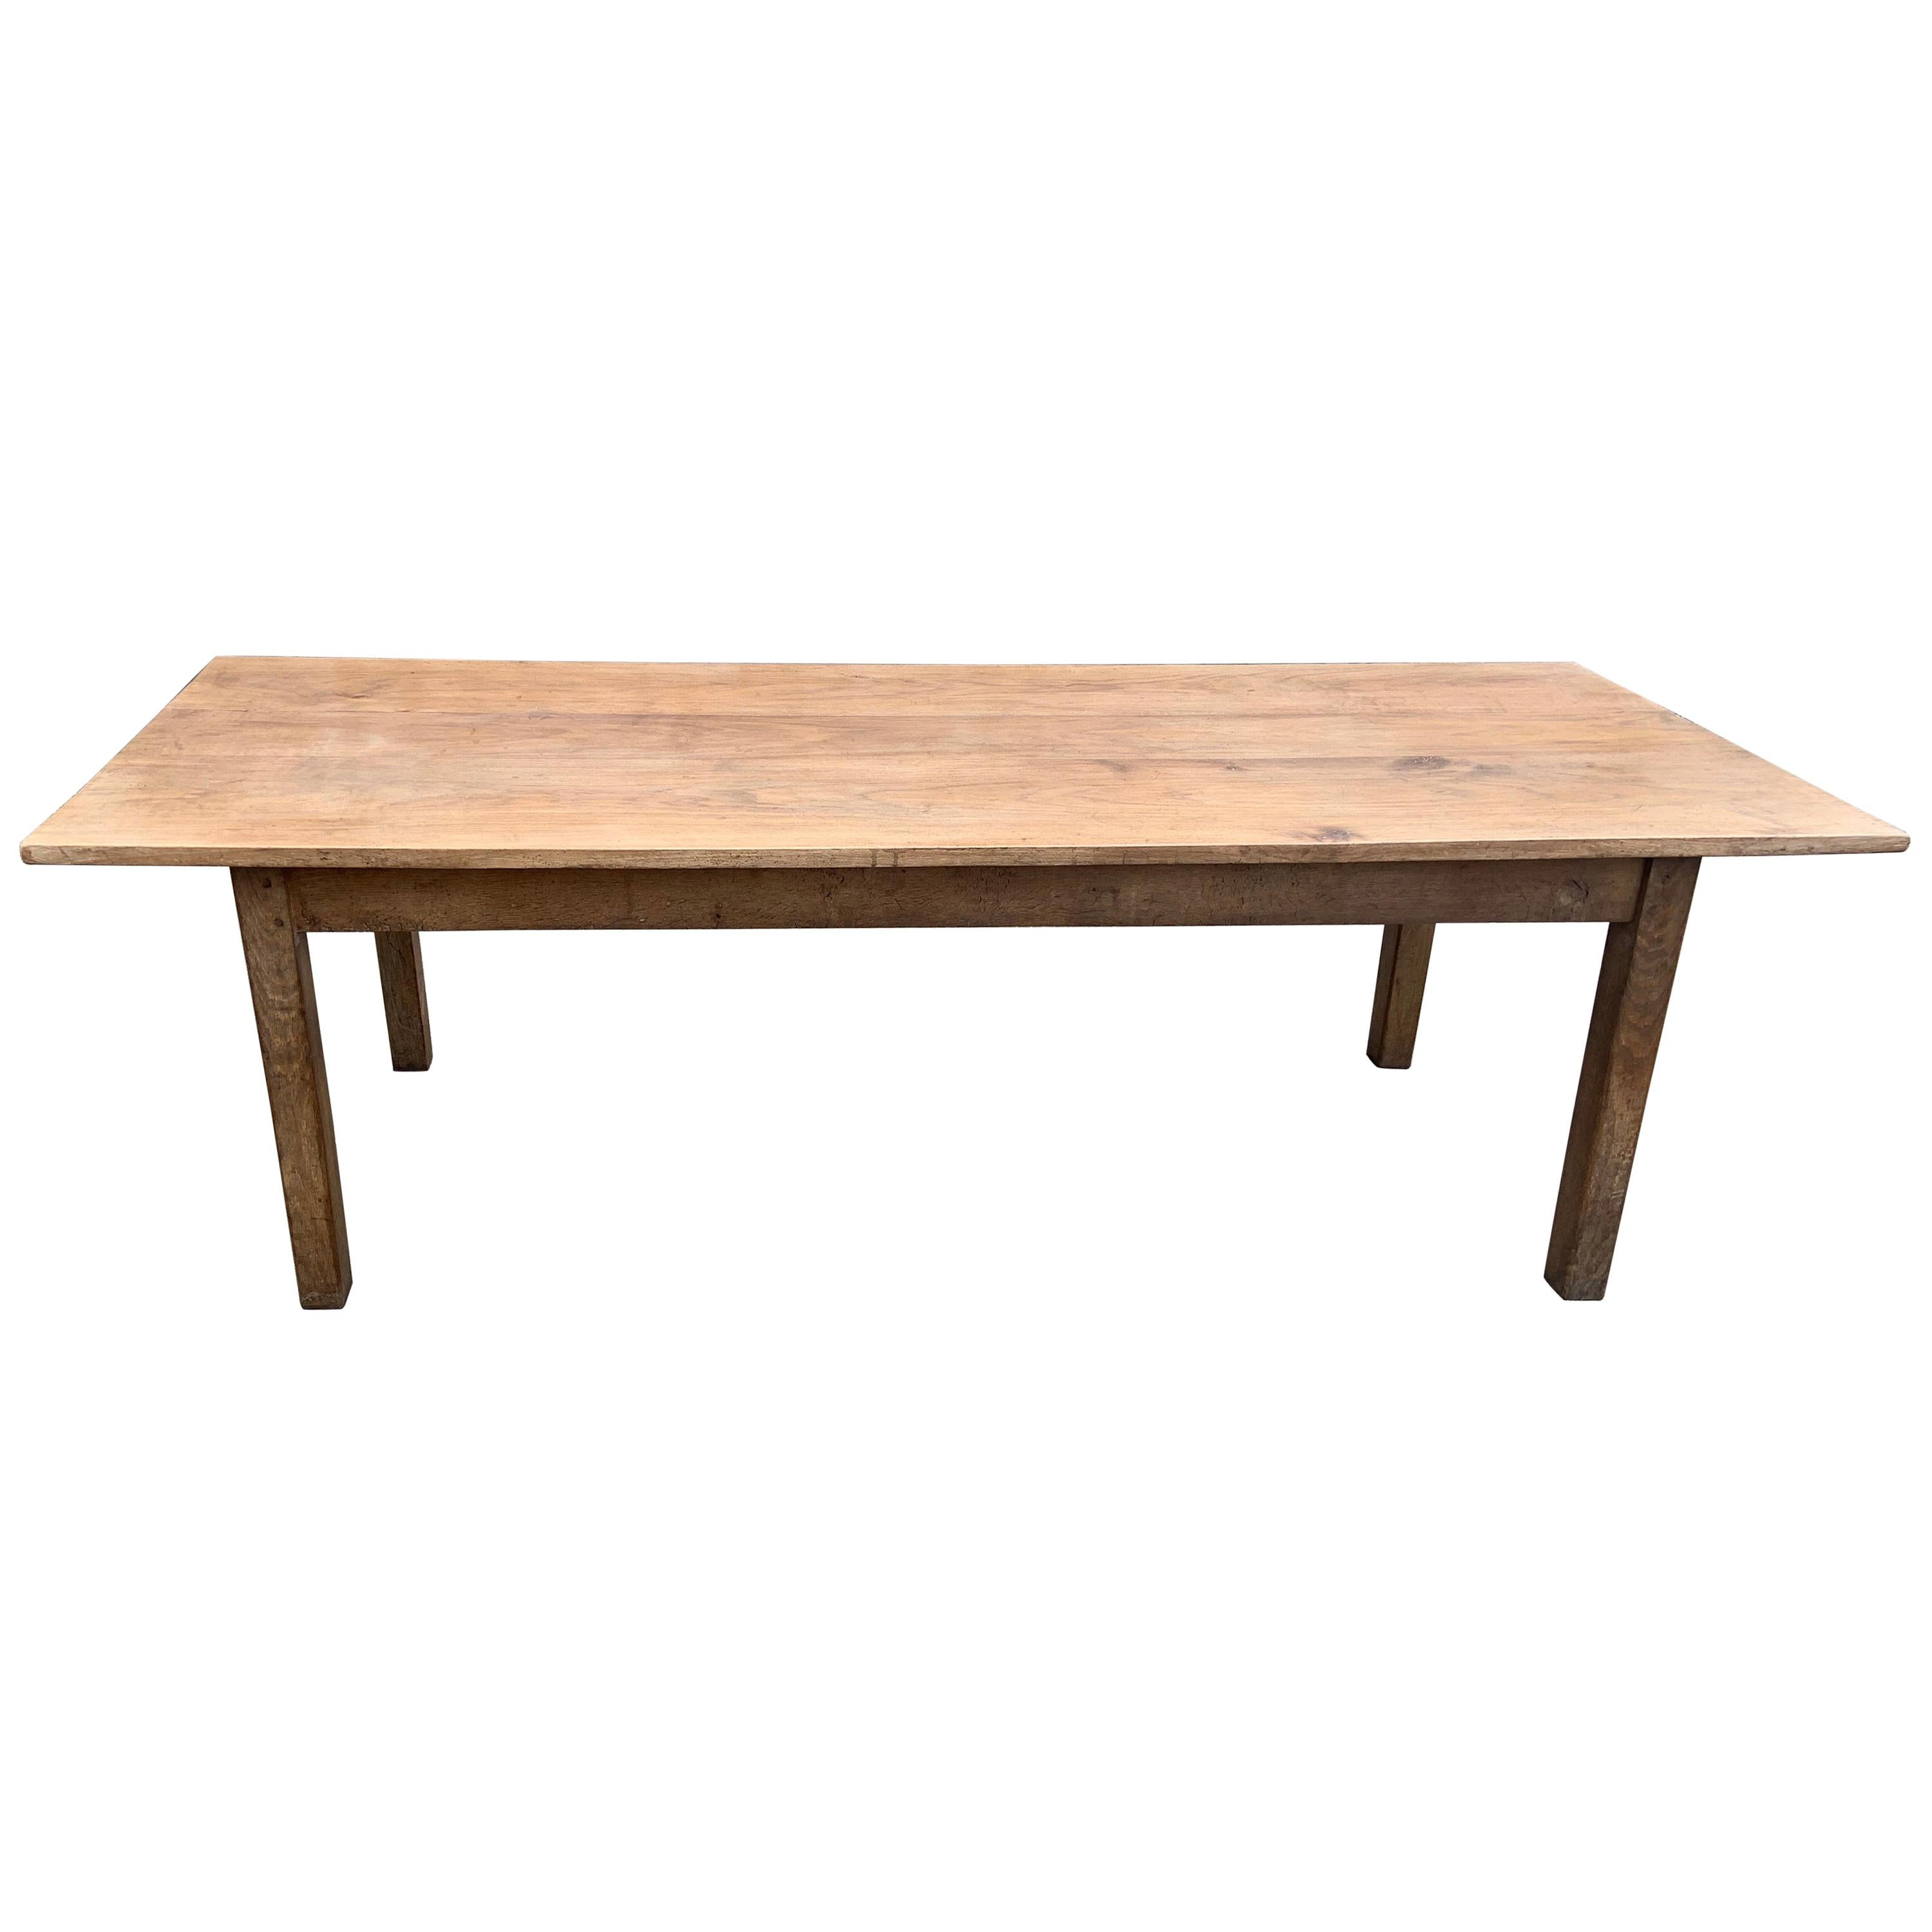 19th Century Elm Farmhouse Table with Square Legs